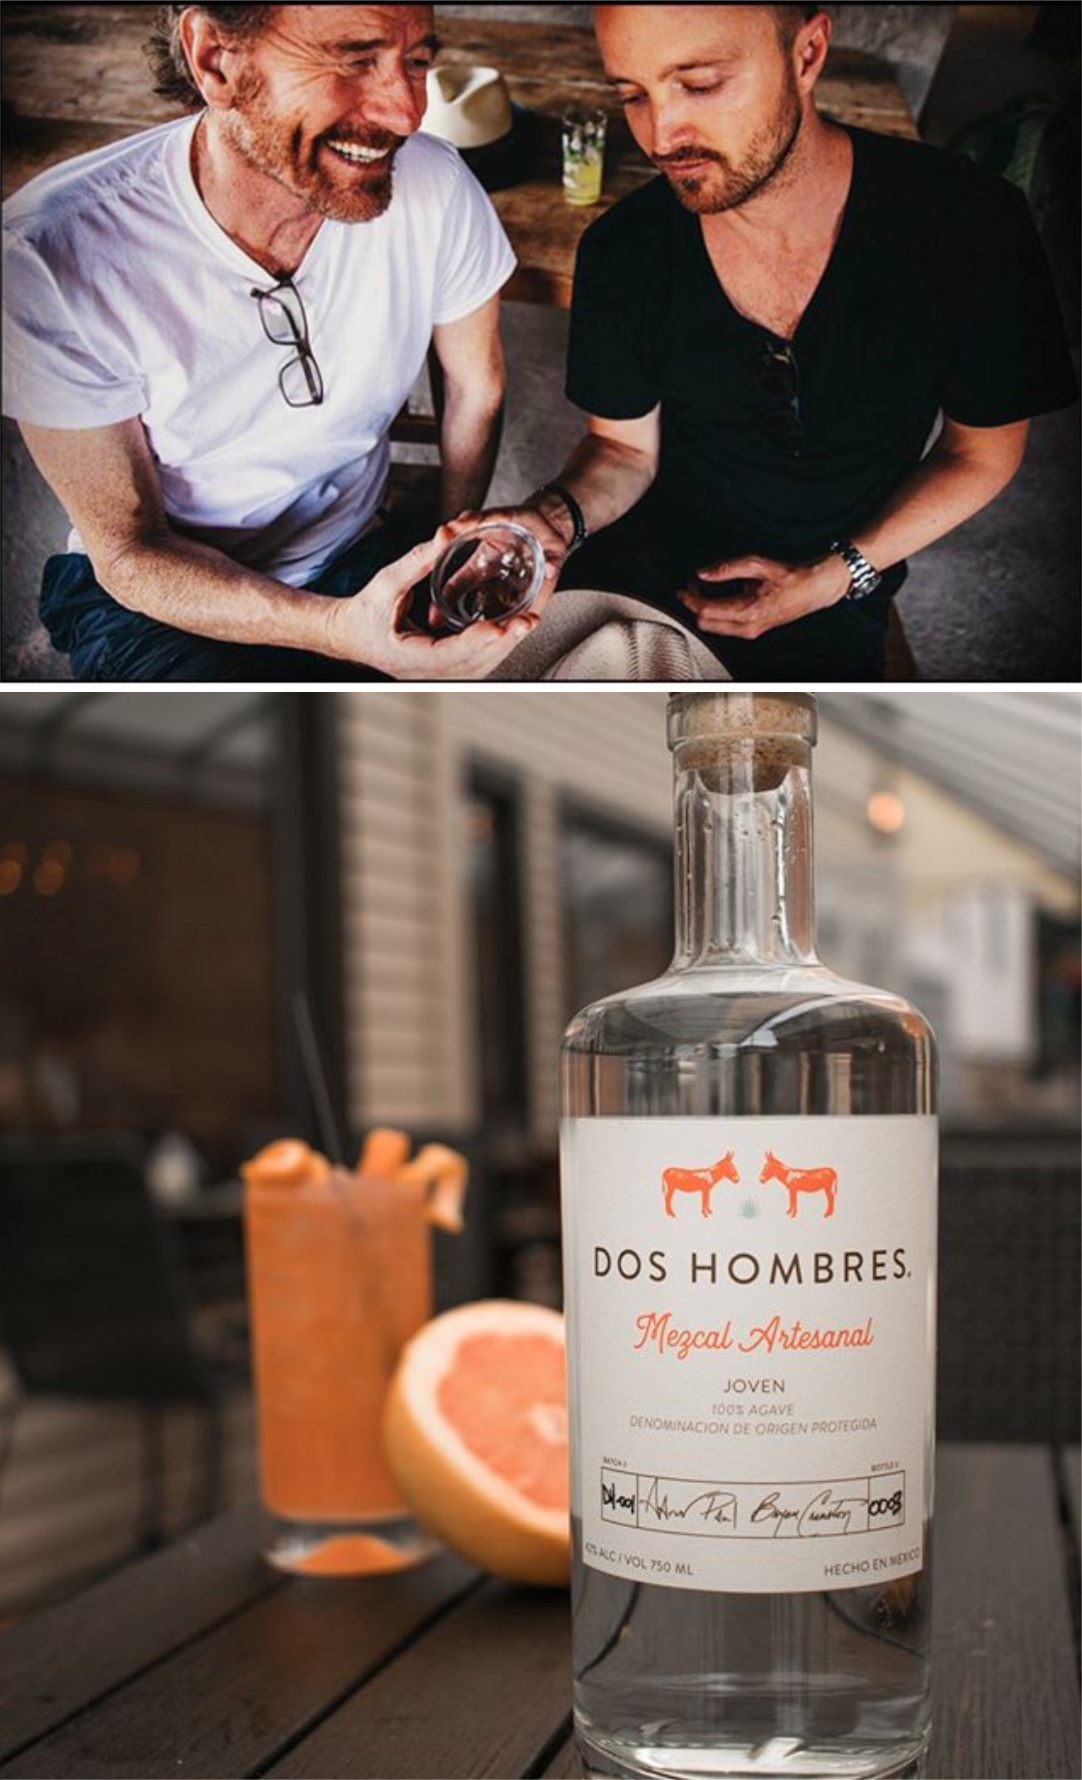 Dos Hombres Mezcal from Bryan Cranston and Aaron Paul